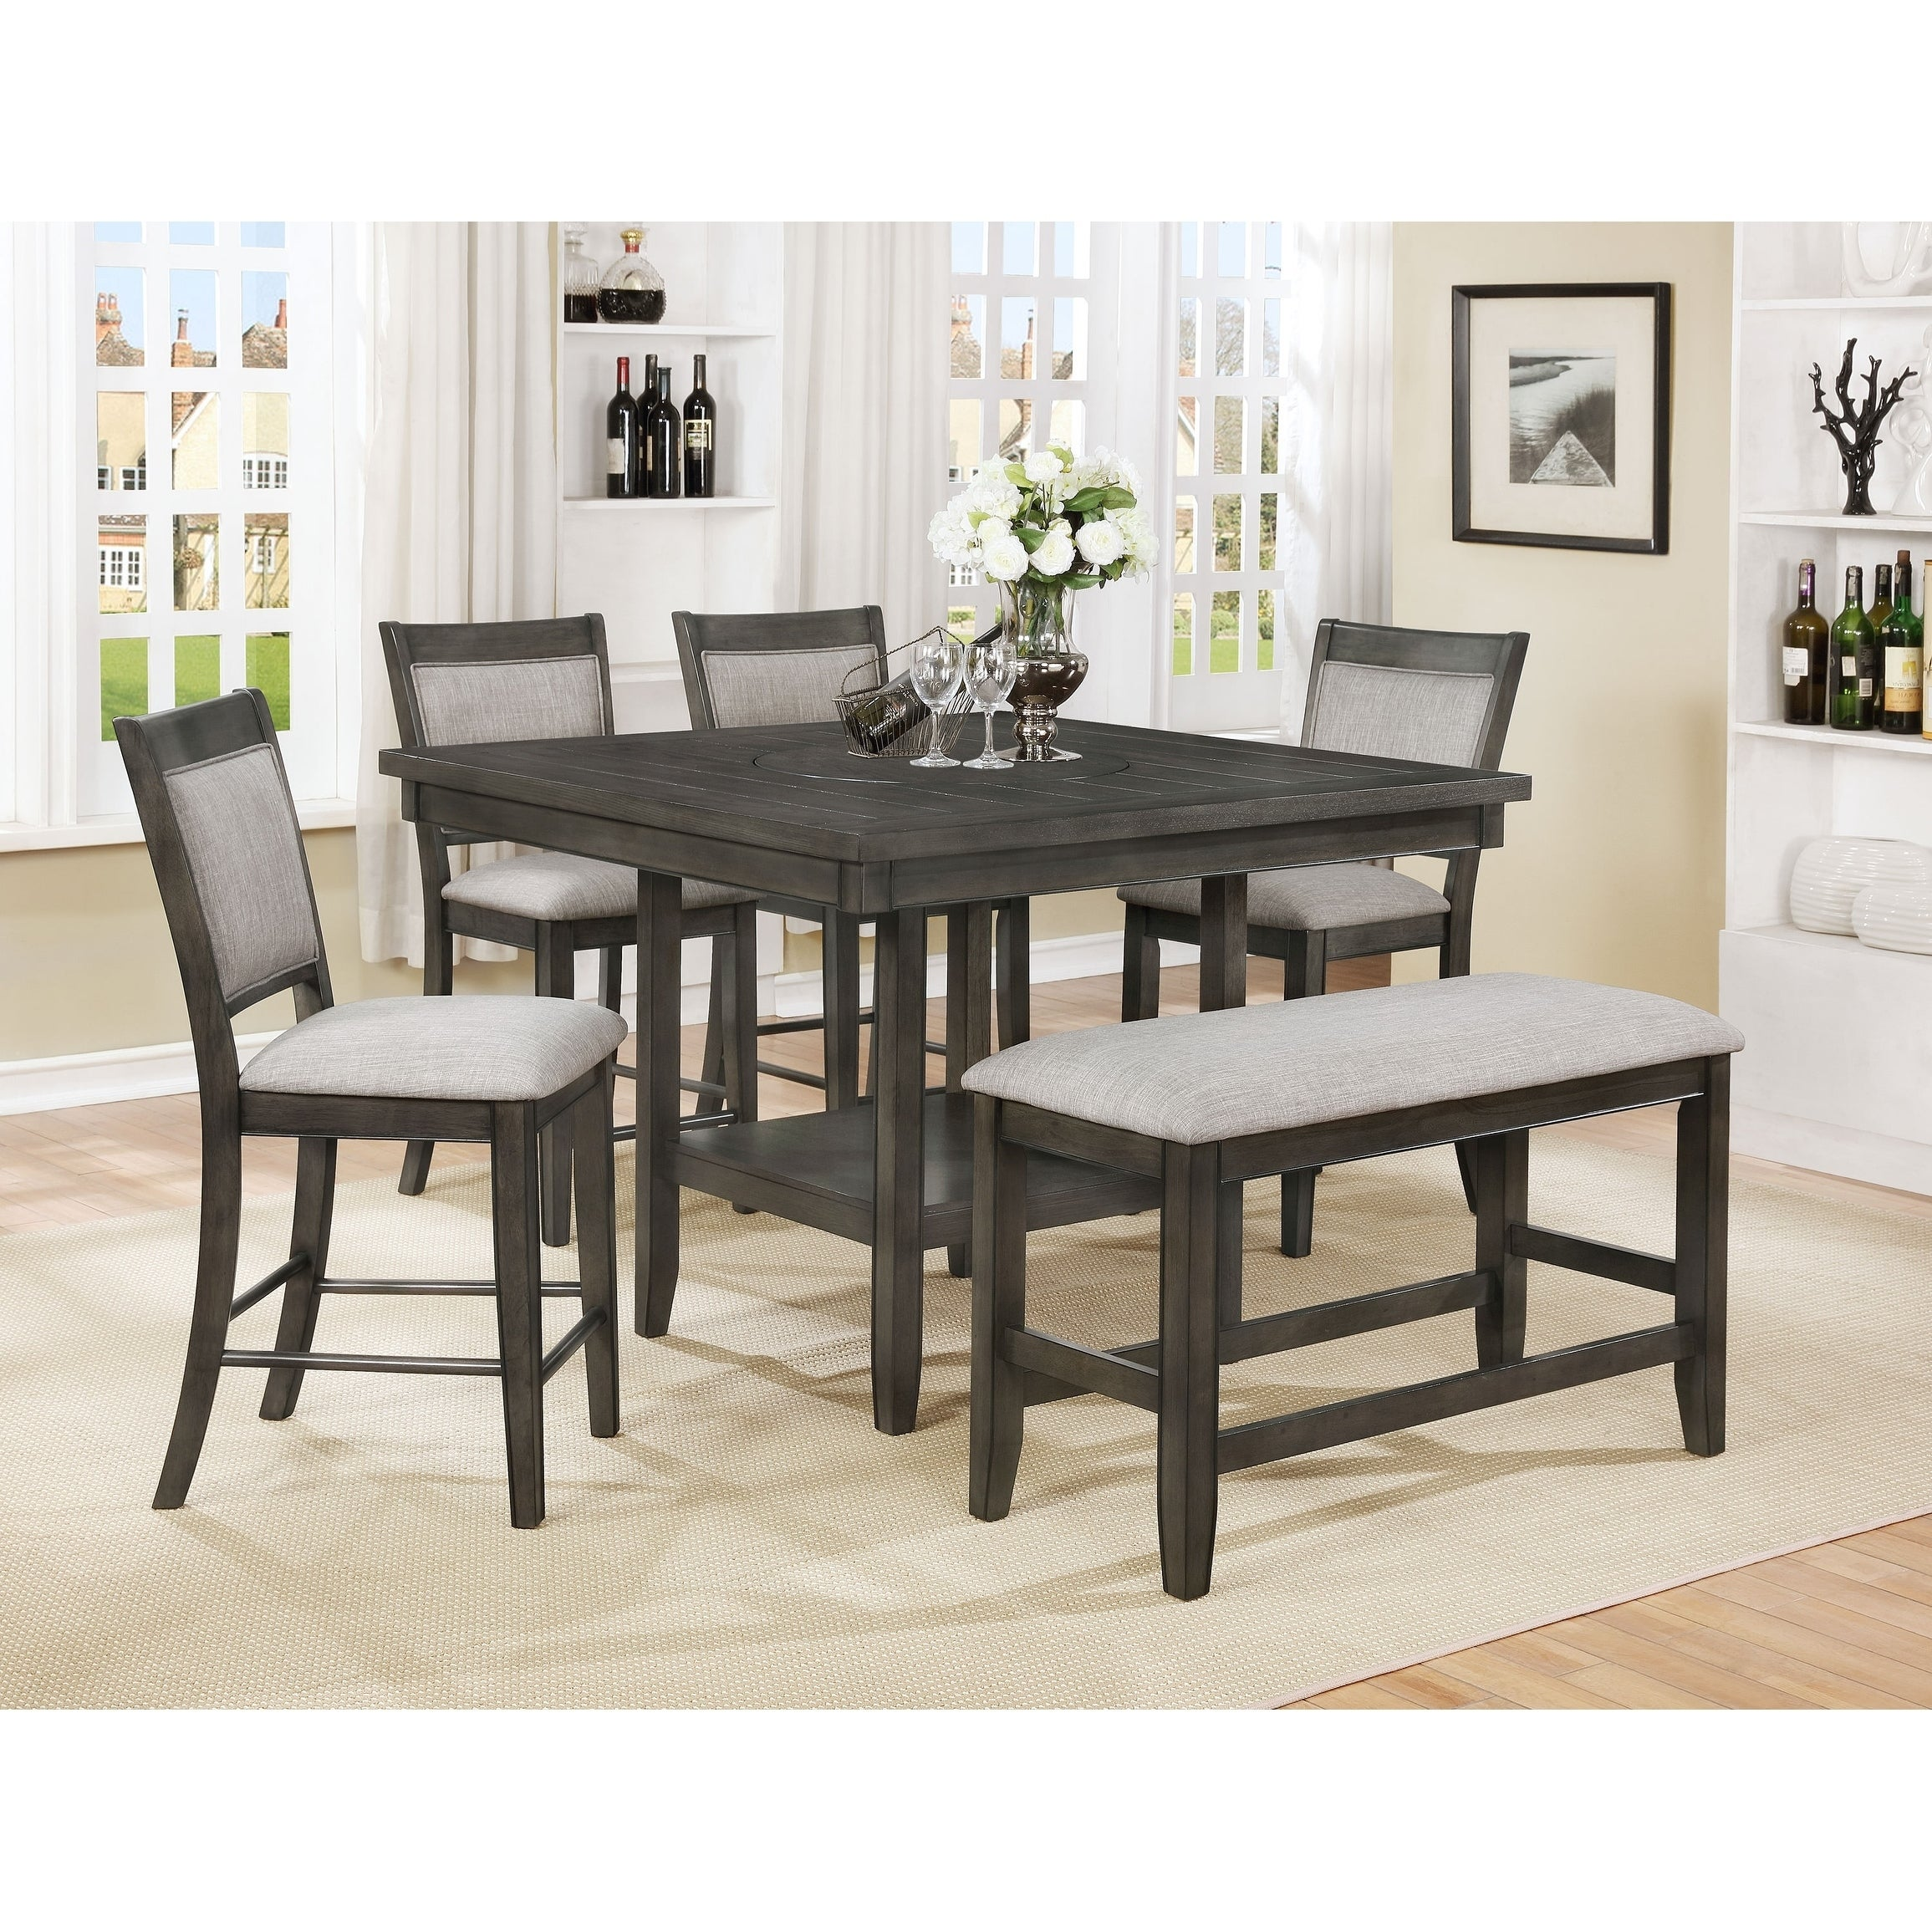 Os Home And Office Model 2727kb Counter Height Dining Table With Four Upholstered Chairs One Bench